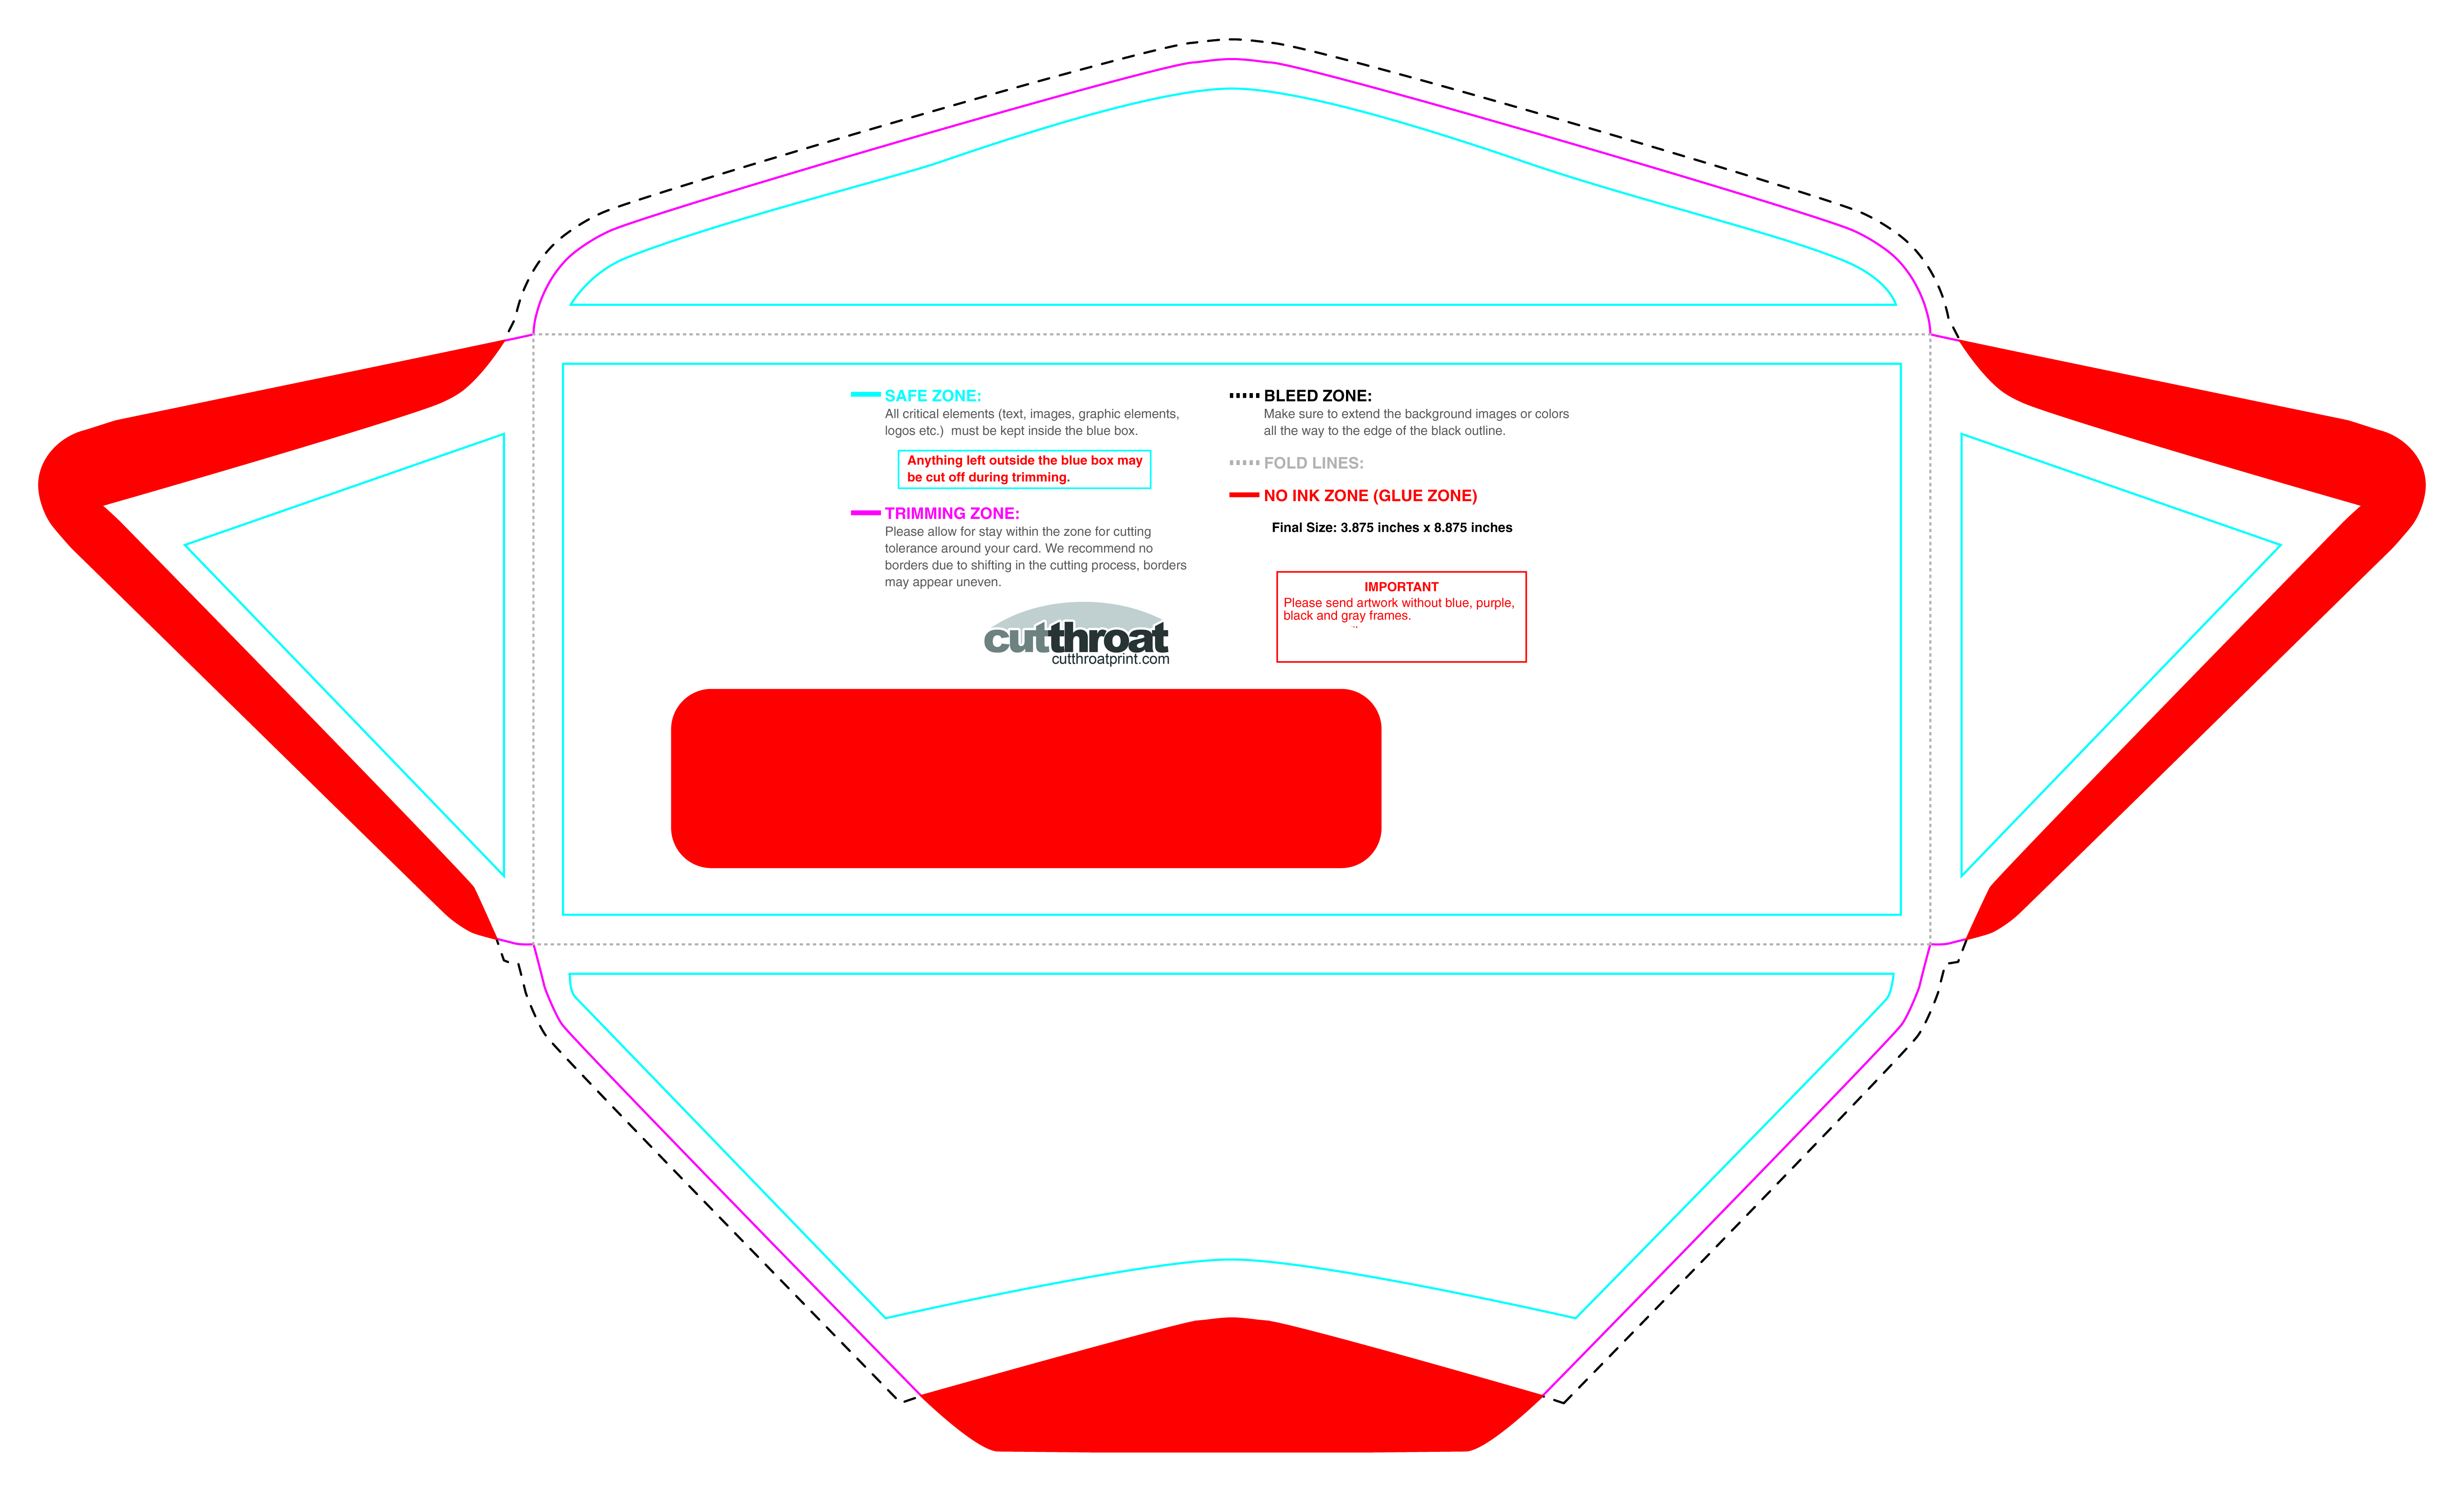 Awesome 10 Best Resume Tips Tall 10 Half Hexagon Template Regular 1099 Excel Template 12 Month Timeline Template Youthful 1st Place Certificate Template Red2 Round Label Template Cutthroat PrintCustom Printed Envelopes With FREE SHIPPING!